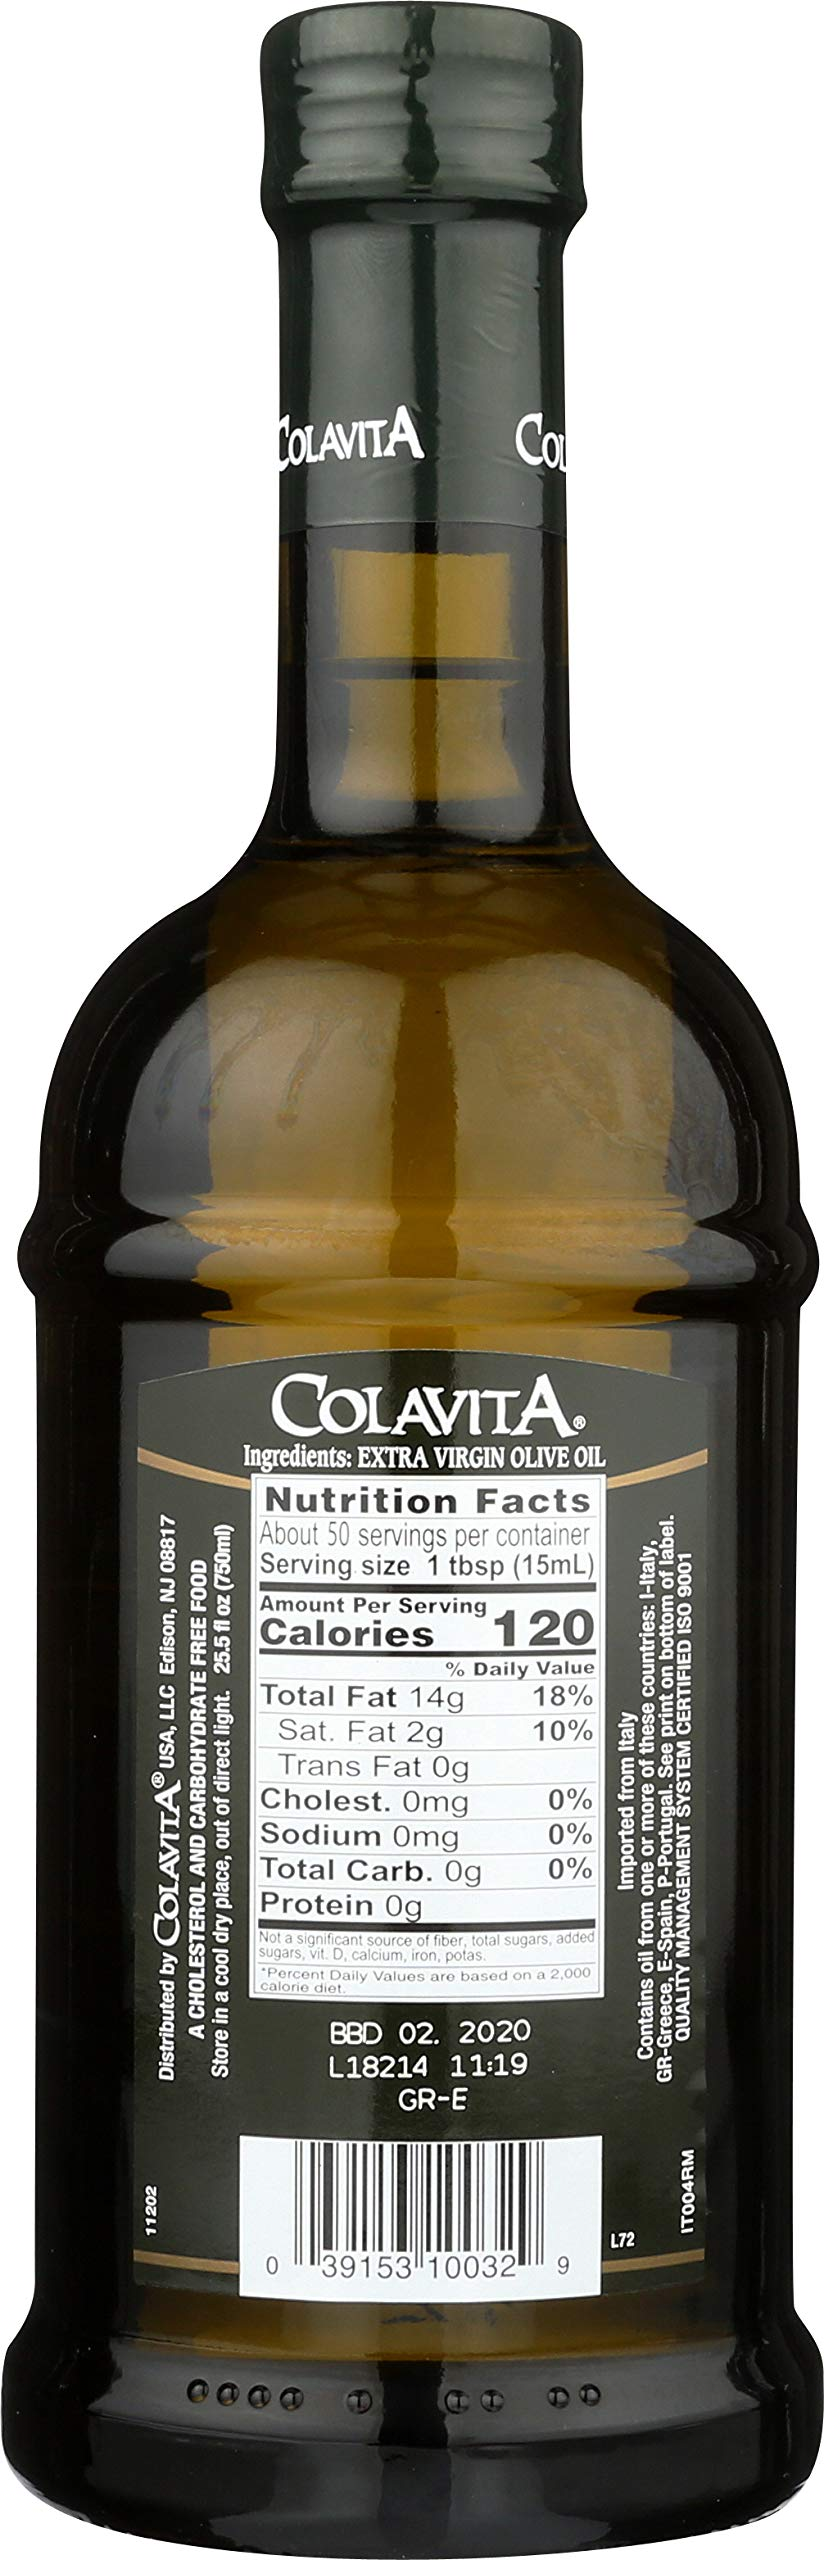 Colavita Extra Virgin Olive Oil, First Cold Pressed, 25.5 fl. oz., Glass Bottle by Colavita (Image #2)